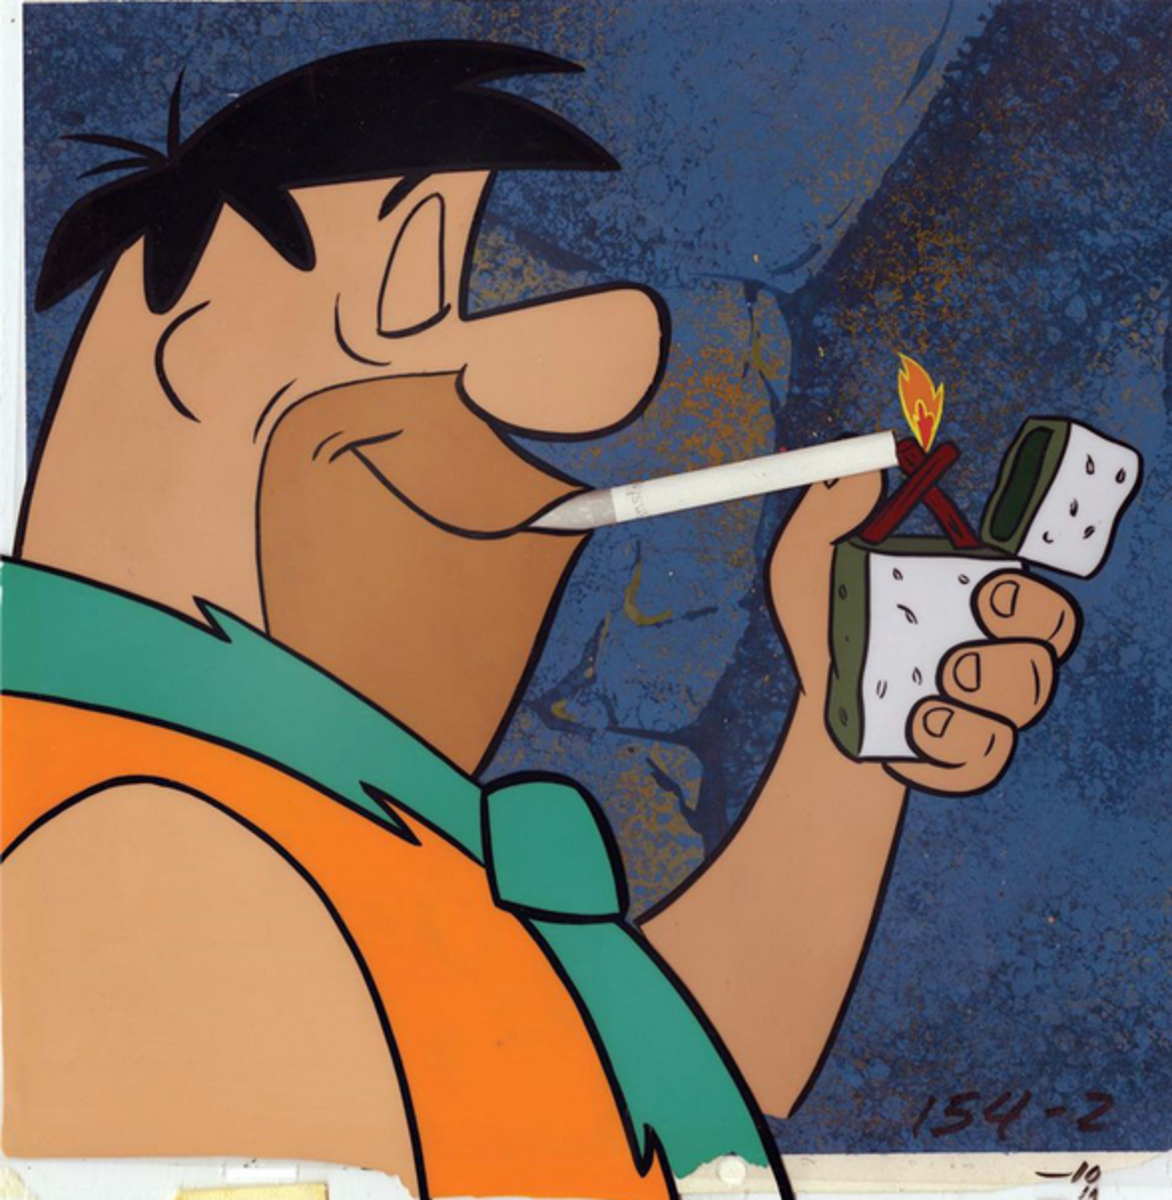 Animation cel from one of the Winston Cigarette ads. Note that the ads were produced in color like the rest of the show, even though color versions of the ads have never been seen.